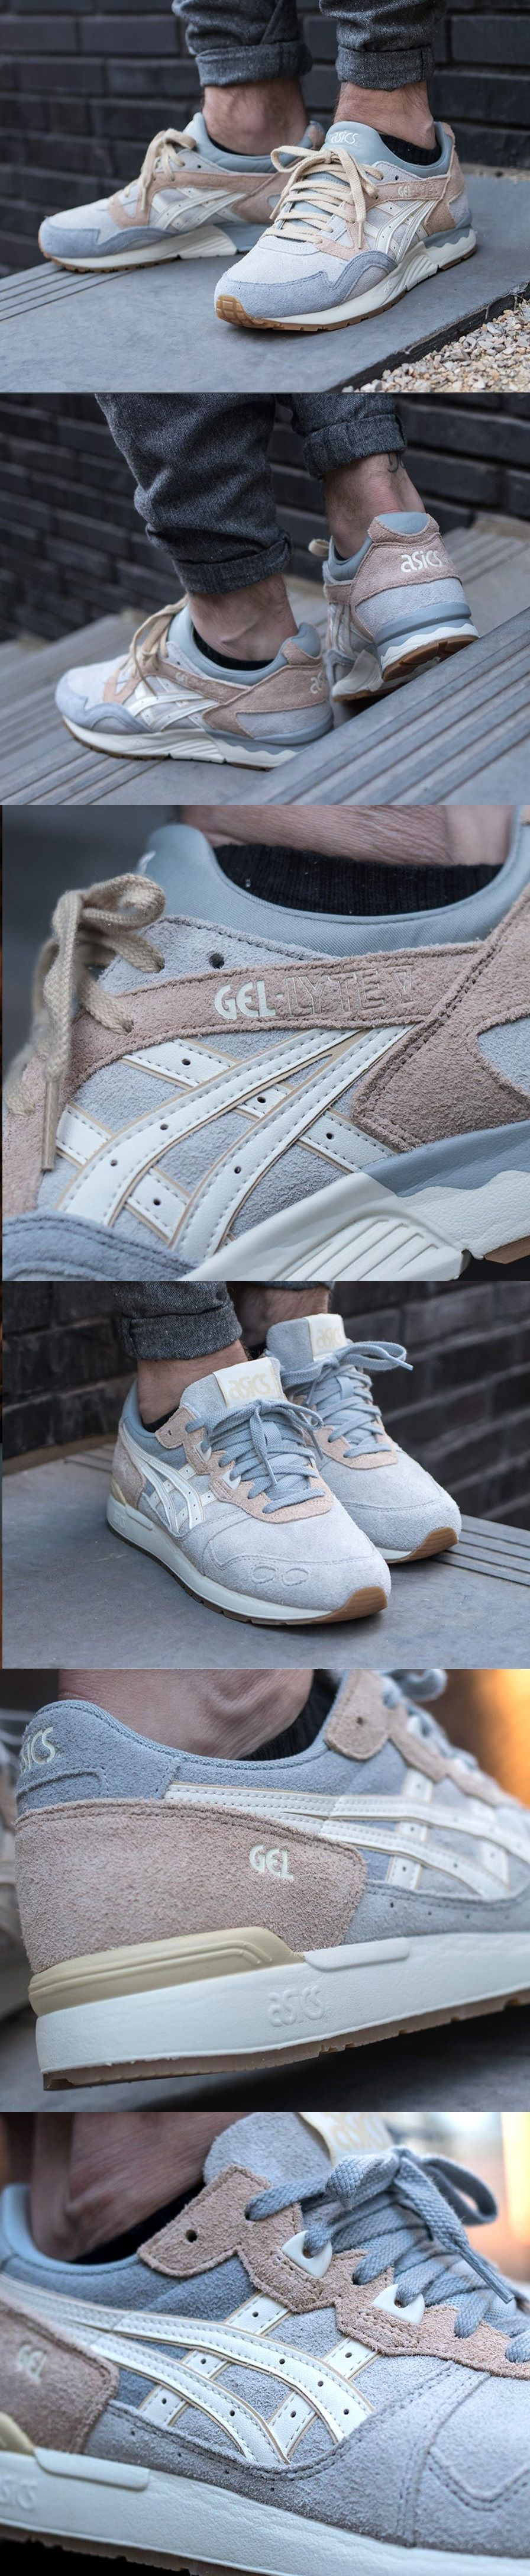 new products 35e63 c713a Le pack  Asics  Gel  Lyte  Glacier  Grey  Cream